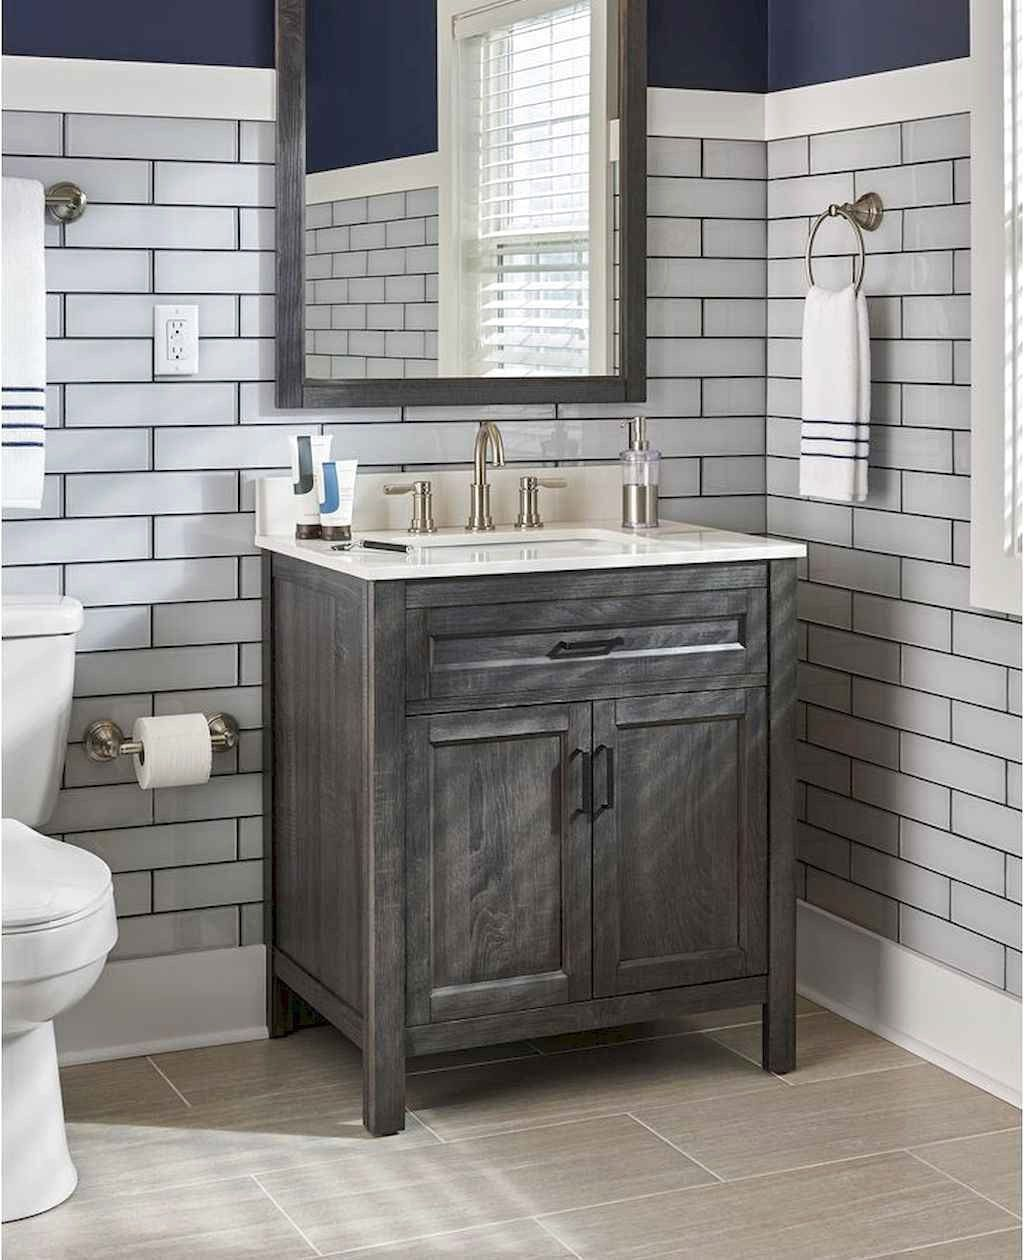 Amazing Farmhouse Bathroom Decor Ideas FRUGAL LIVING